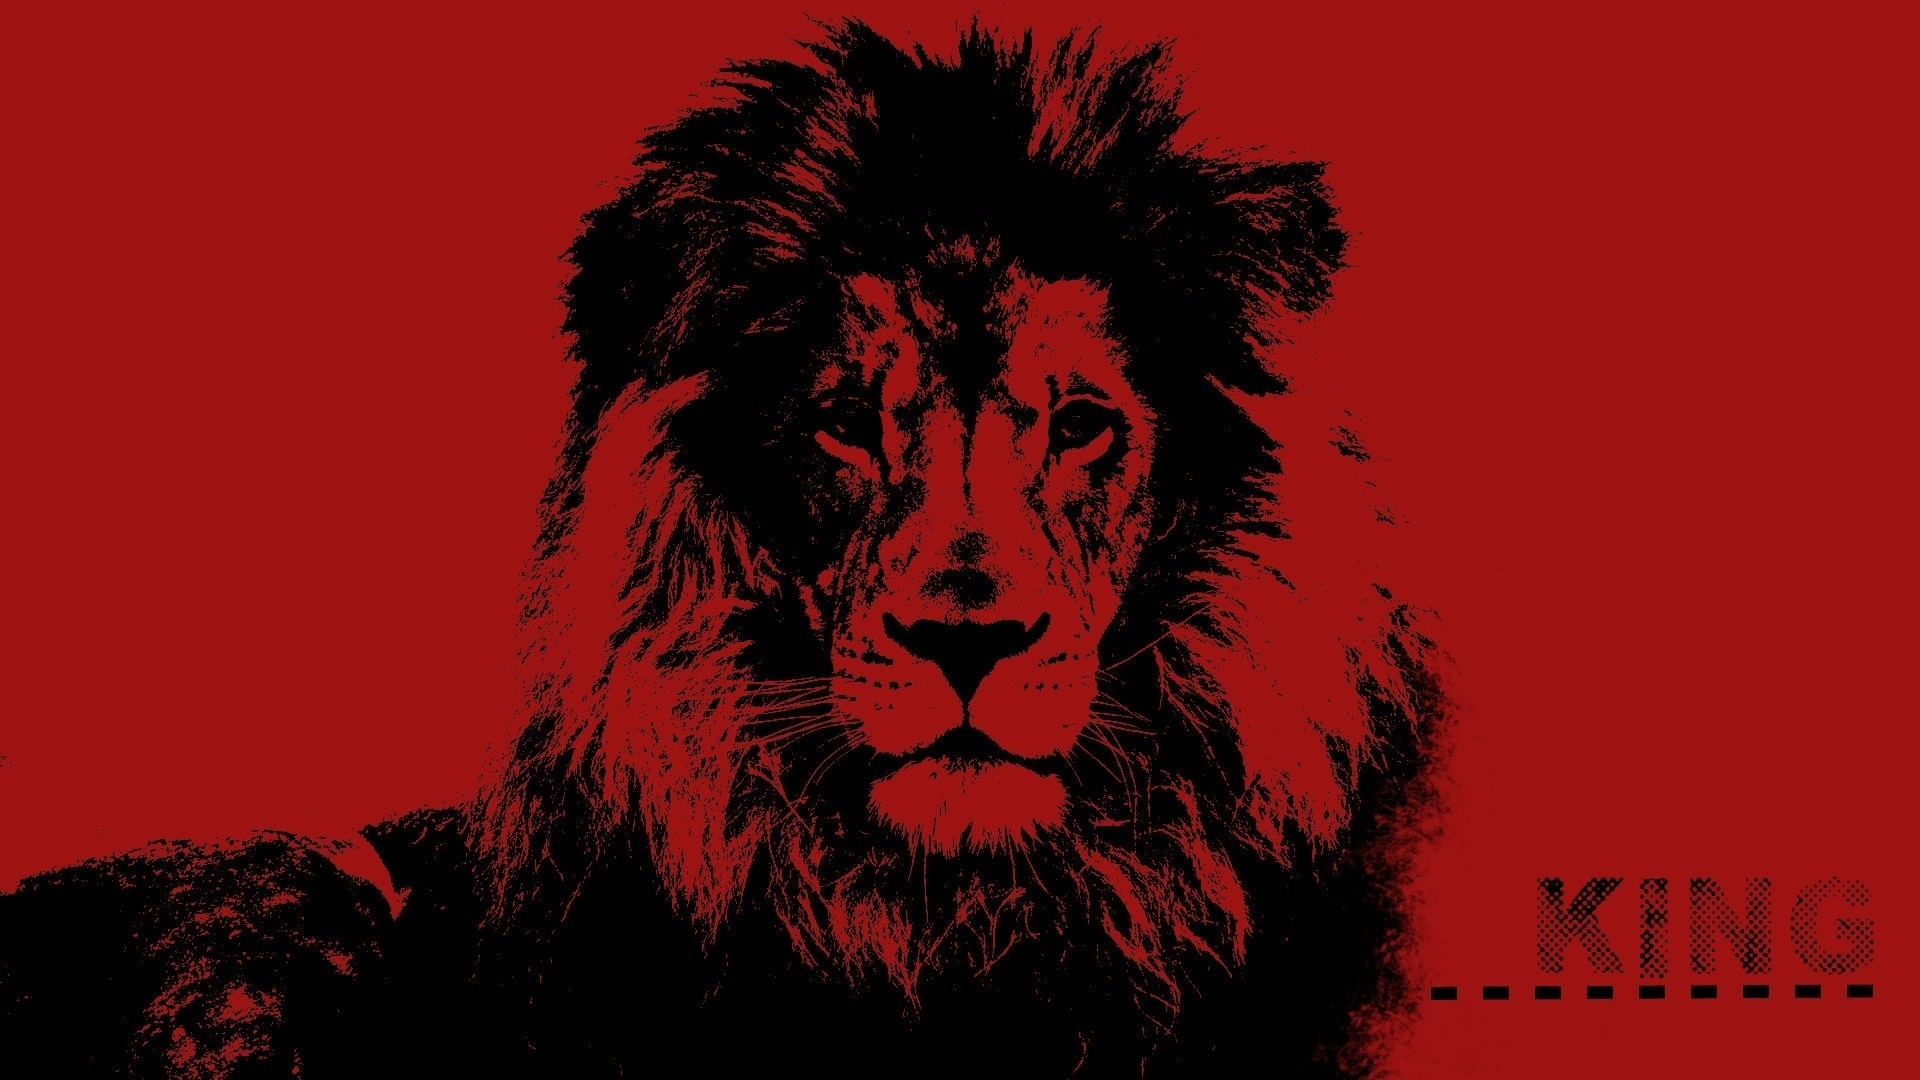 Wallpapers Rasta Hd Group - Red And Black Lion , HD Wallpaper & Backgrounds